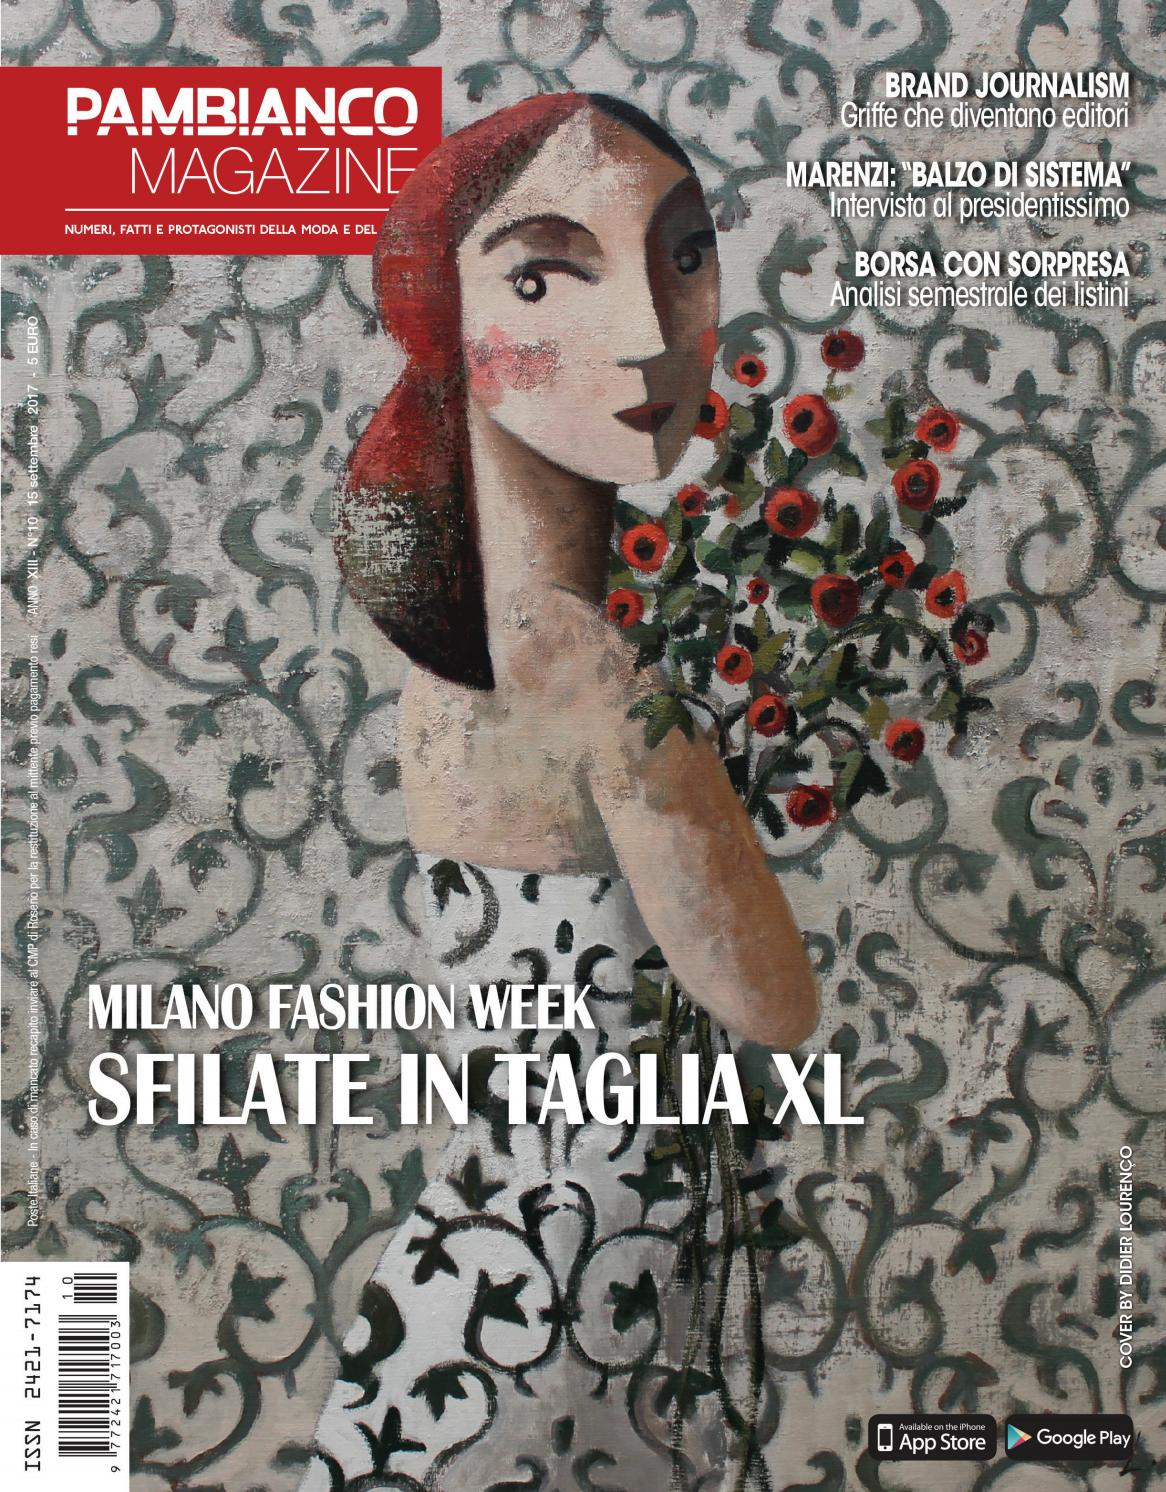 Pambianco magazine N10 XIII by Pambianconews - issuu ec85e0d03a6c